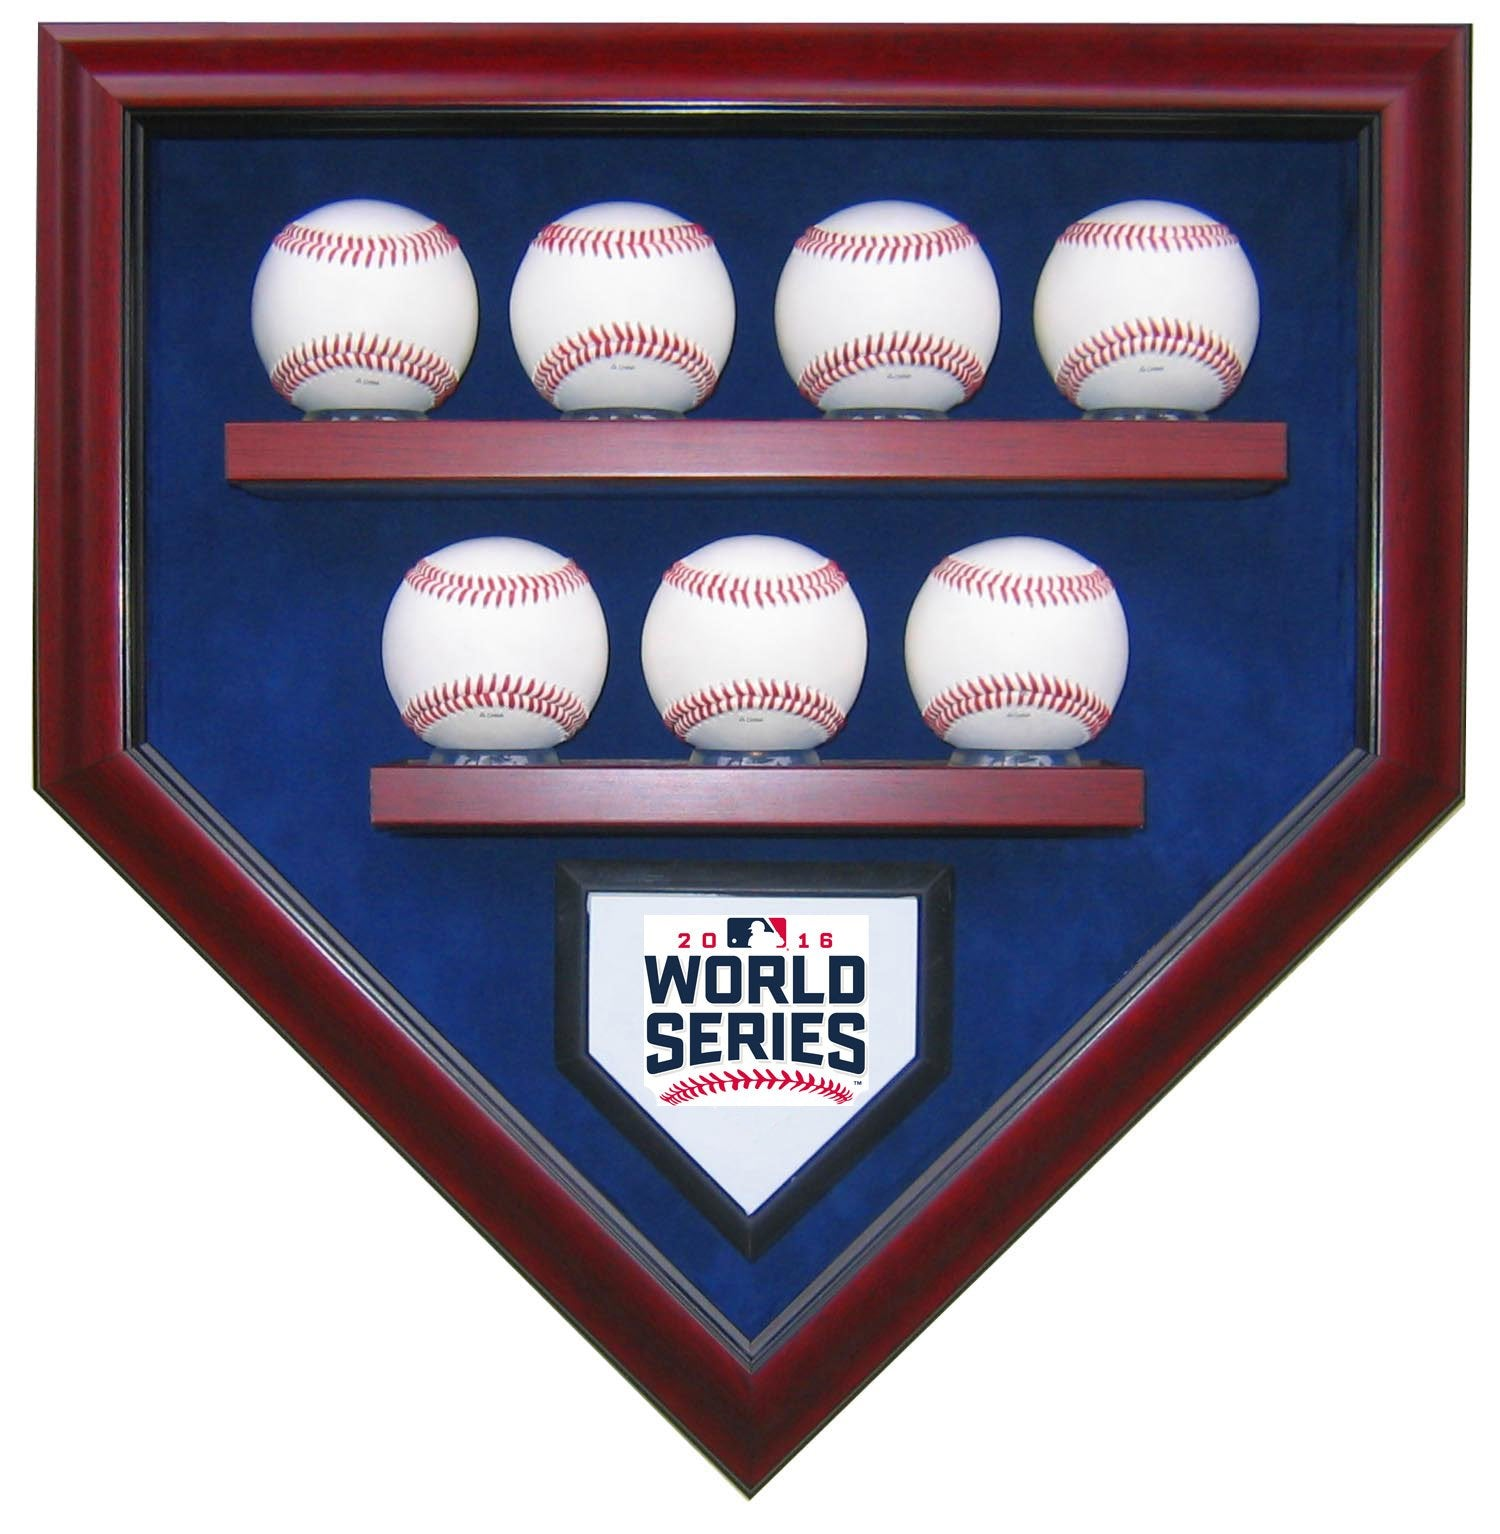 7 BASEBALL CHICAGO CUBS 2016 WORLD SERIES HOMEPLATE SHAPED DISPLAY CASE-Powers Sports Memorabilia